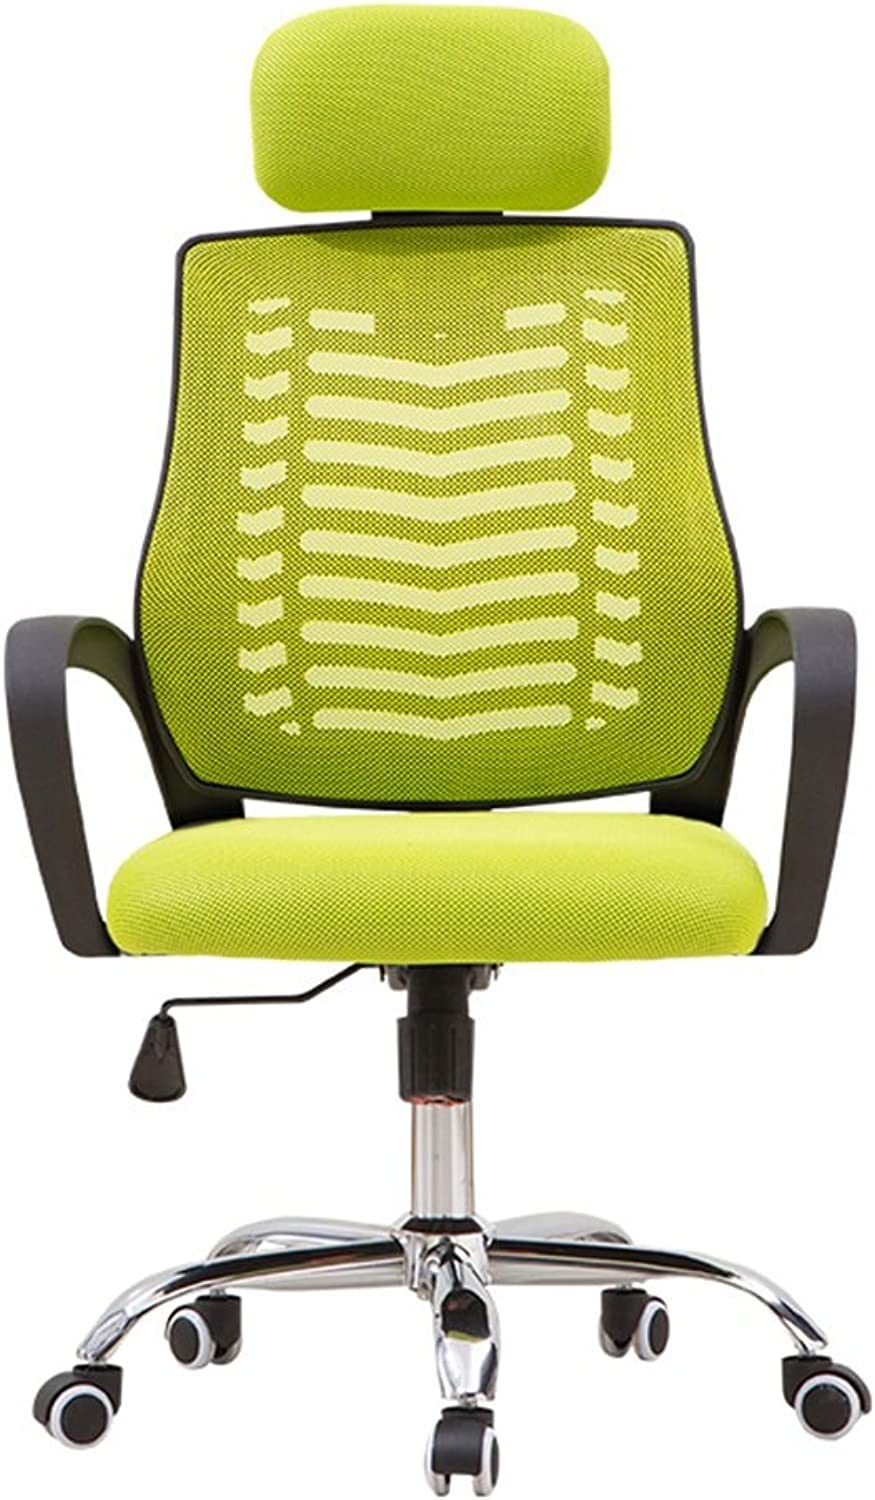 Home Leisure Back mesh Swivel Chair Home Computer Chair Comfortable Stool Student Chair Office Chair Staff Chair redating Chair (color   Green, Size   60cm60cm124cm)